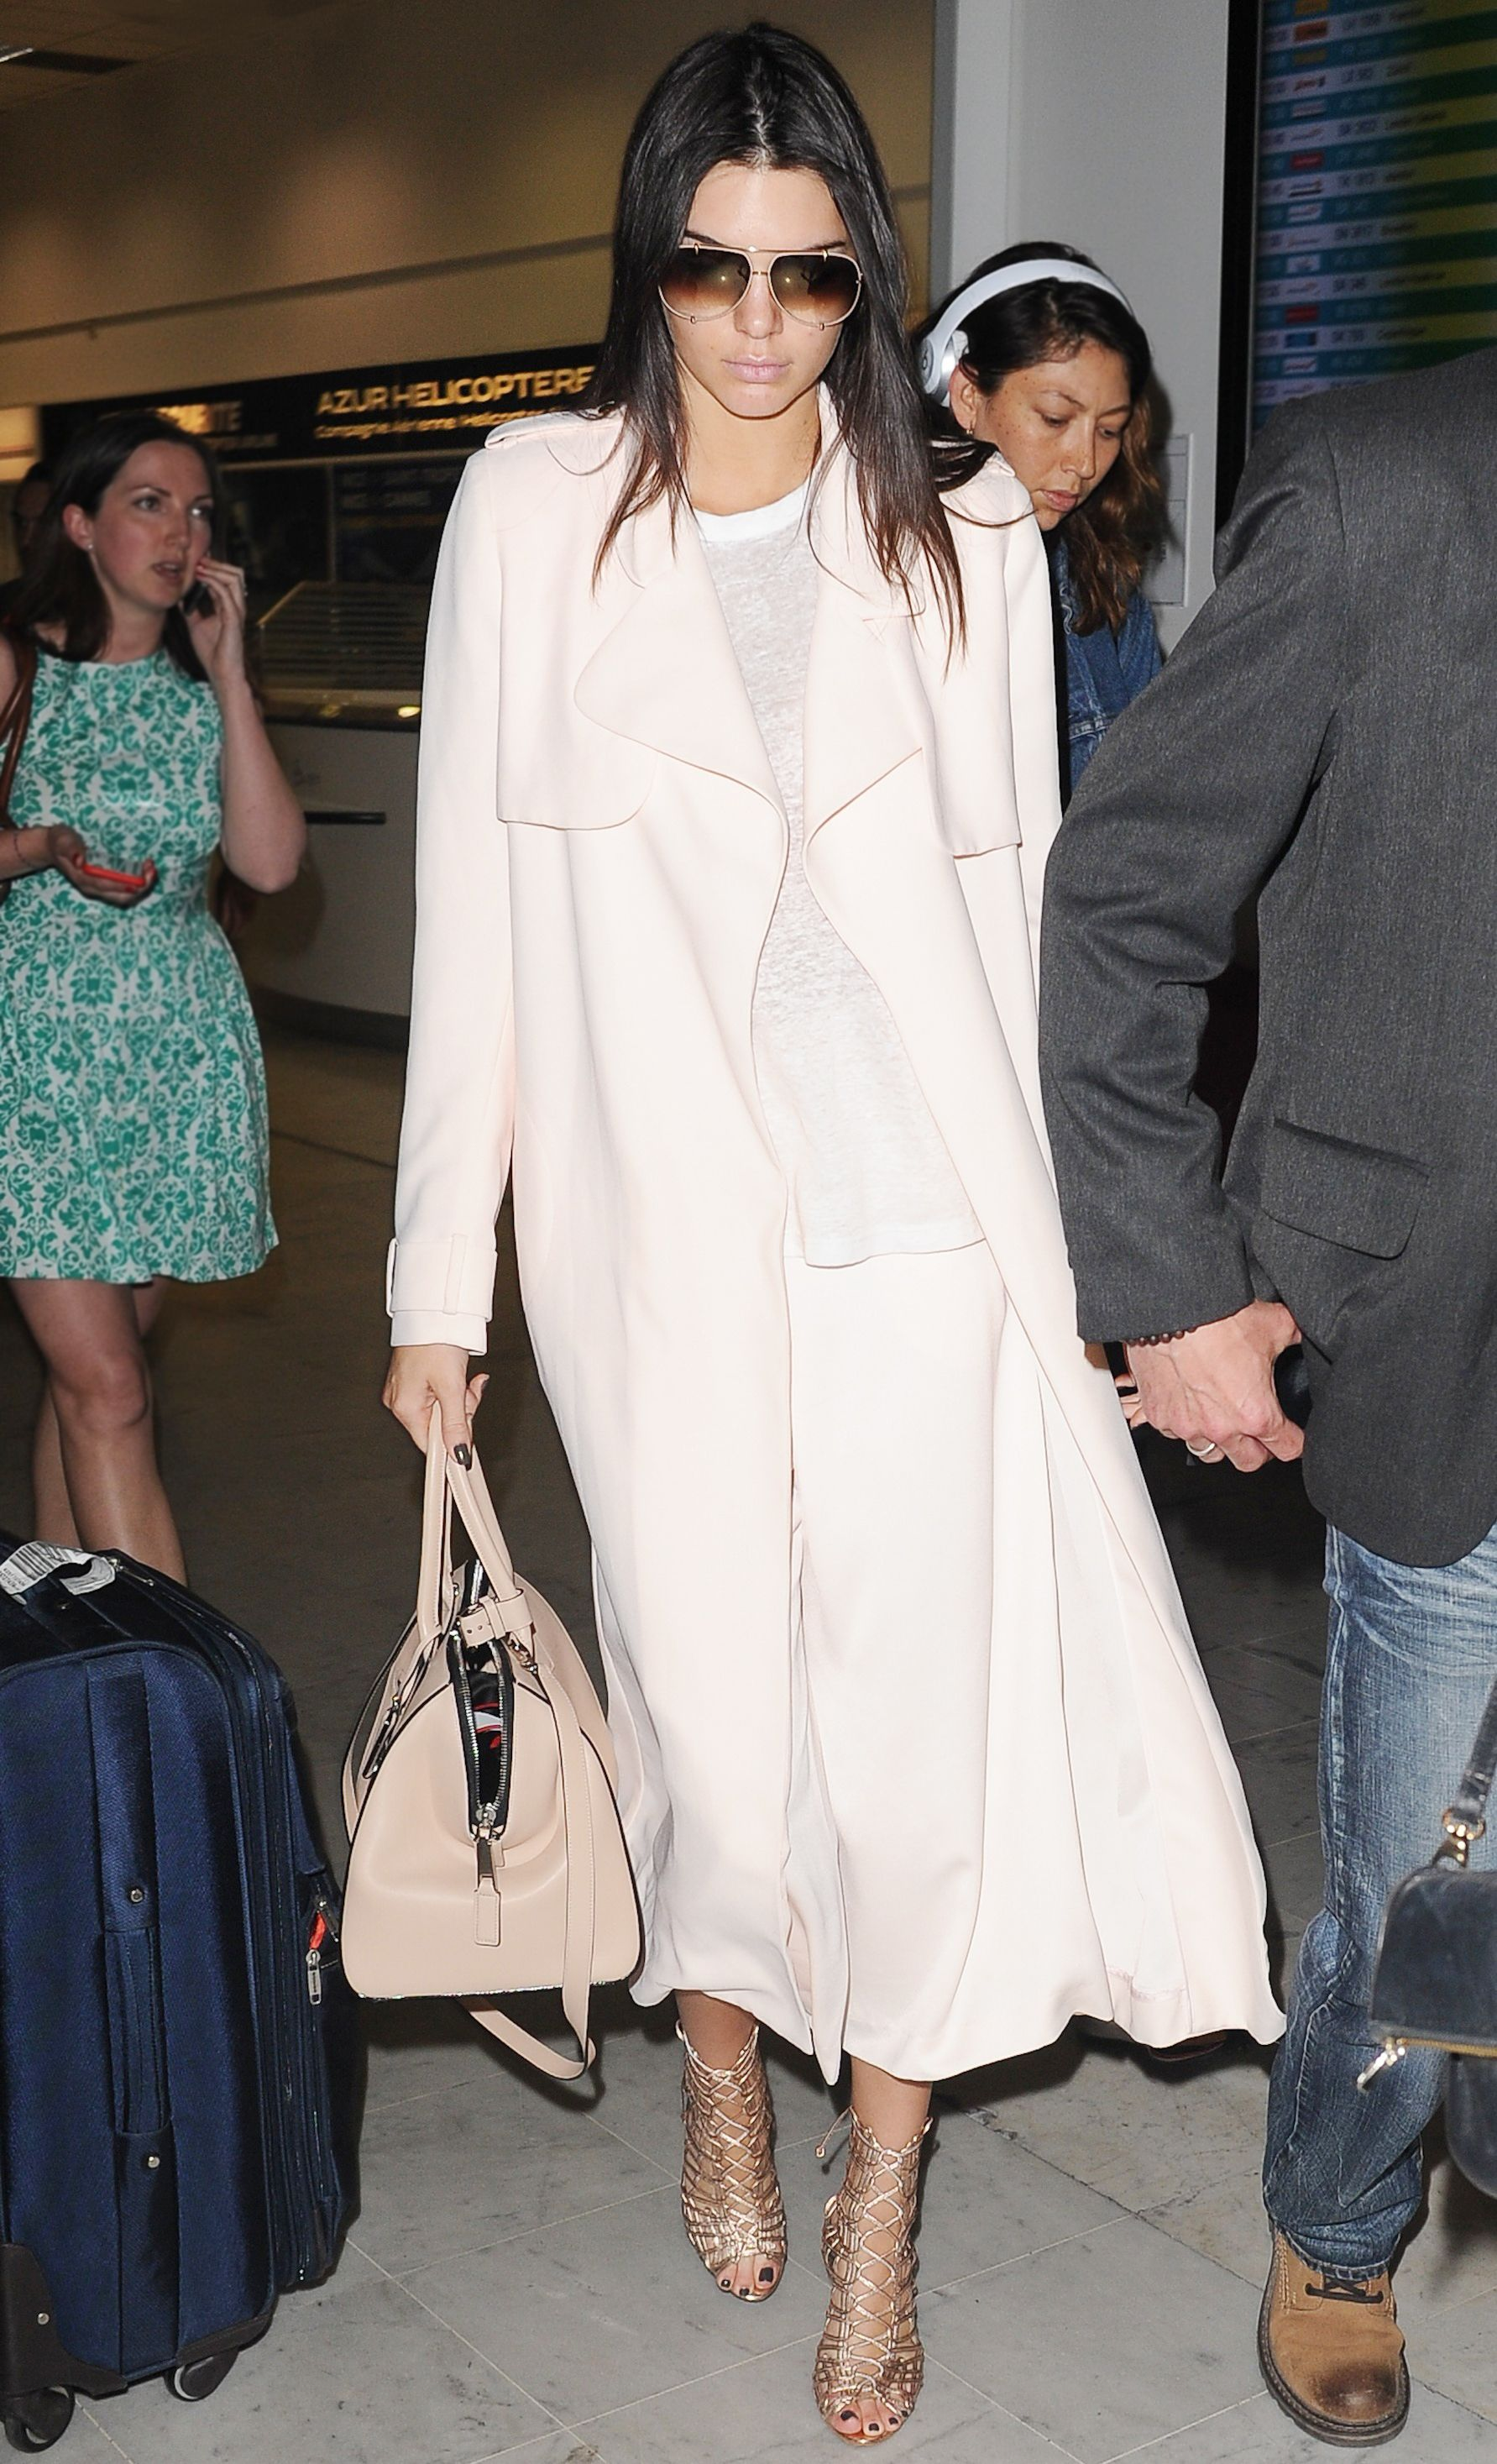 Fly in Style (& Comfort) in These 6 Celeb-Approved Pants from #InStyle